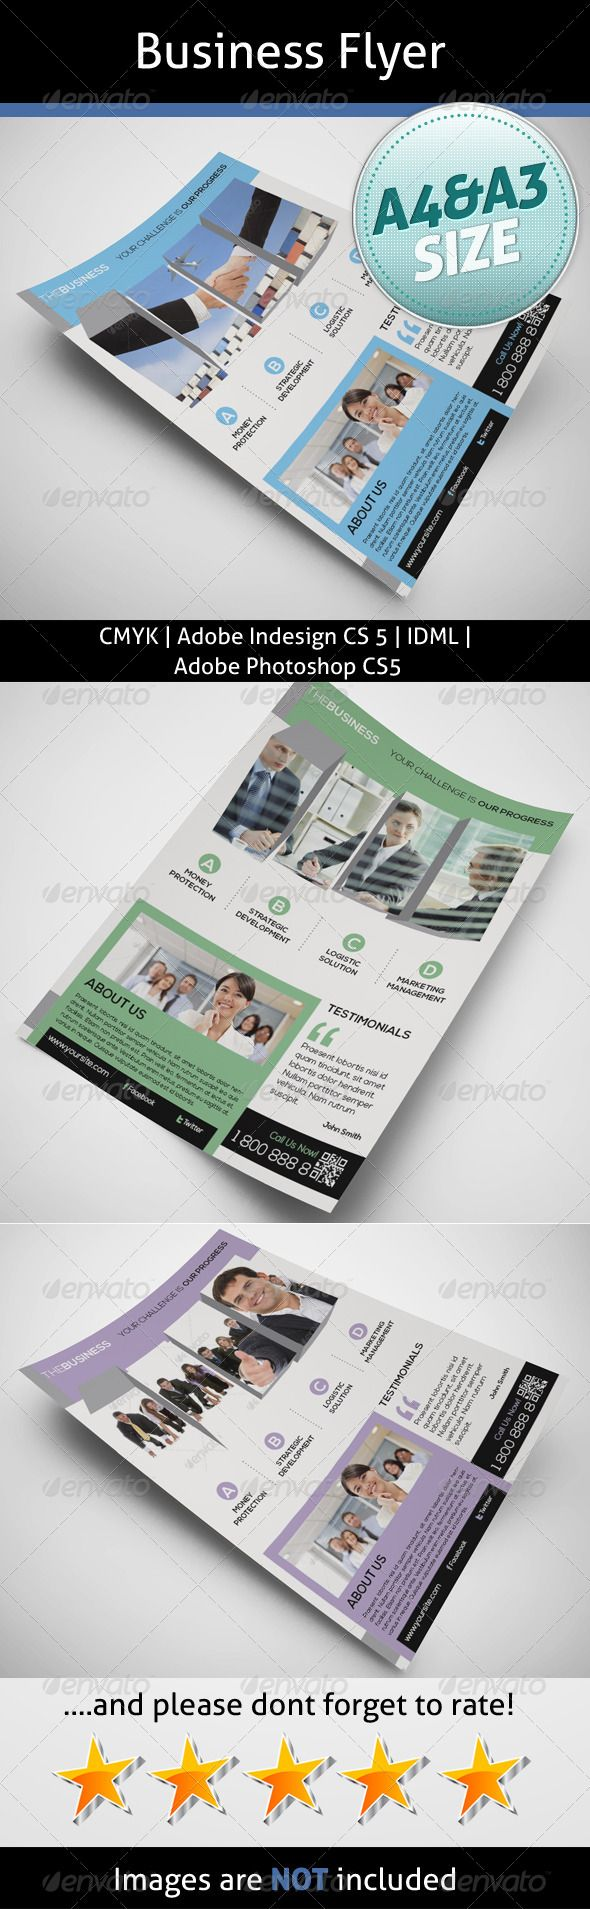 Business Flyer  #GraphicRiver         A4 8.2677×11.6929  	 A3 11.6929×16.5354  	 Bleed 5 mm  	 InDesign CS5  	 Idml  	 Photoshop CS5  	 300dpi  	 CMYK  	 Nexa:  .fontsquirrel /fonts/nexa  	 Info file included  	 Images are not included  	 If you need any help with your purchase please contact me  	 Photo credit:  photodune /item/portrait-of-businesswoman-holding-her-tablet-computer-and-commun/4800312?WT.ac=category_thumb&WT.seg_1=category_thumb&WT.z_author=HASLOO photodune…